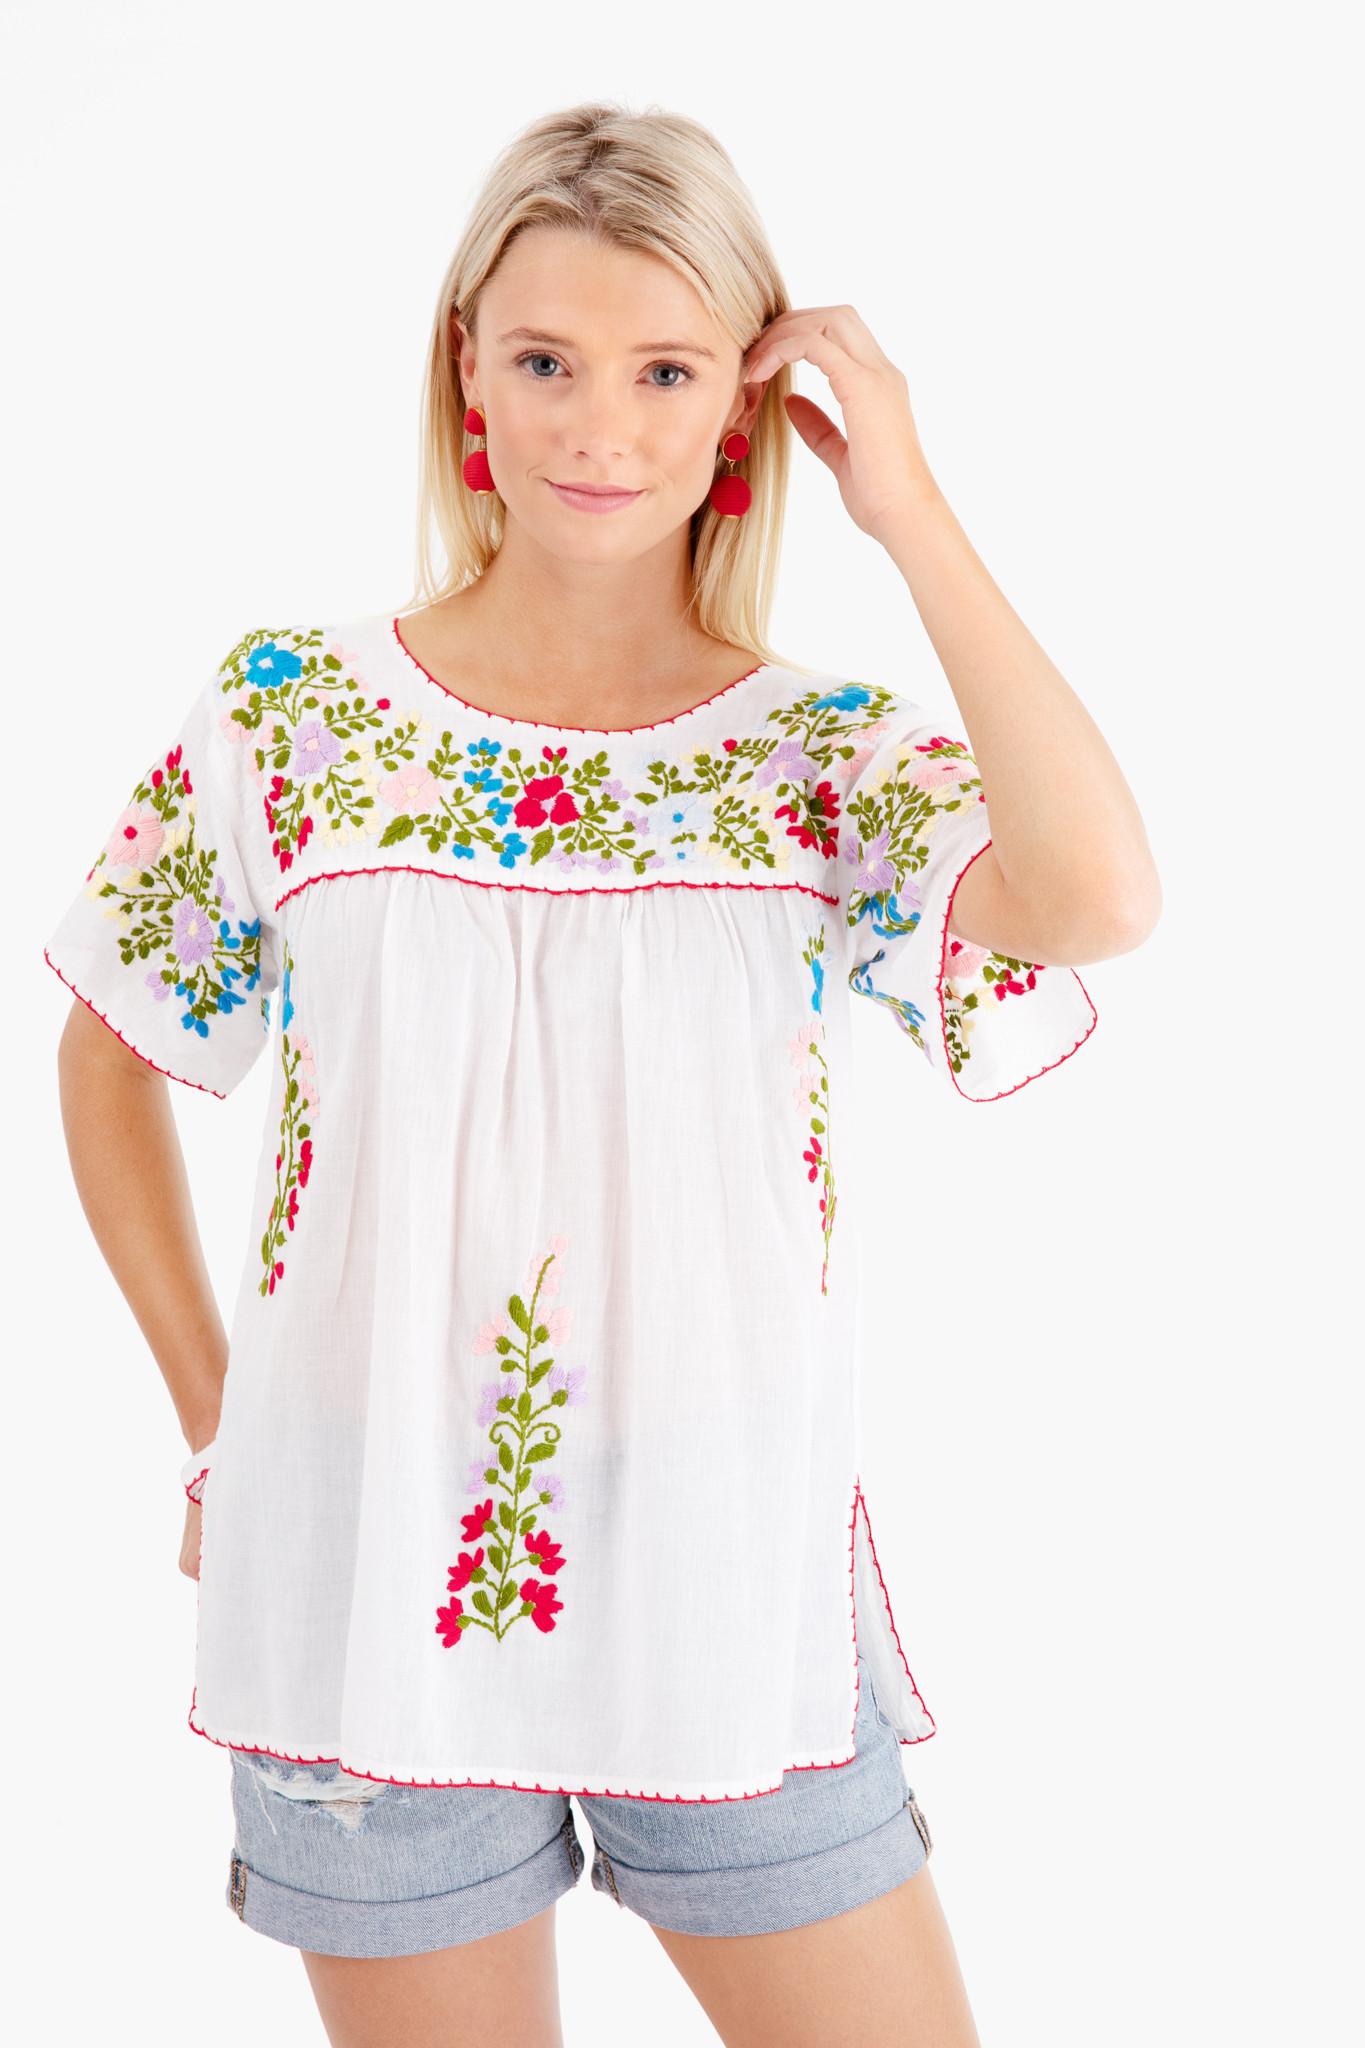 Mexican Floral Embroidered Top White Red Blue Green Women's